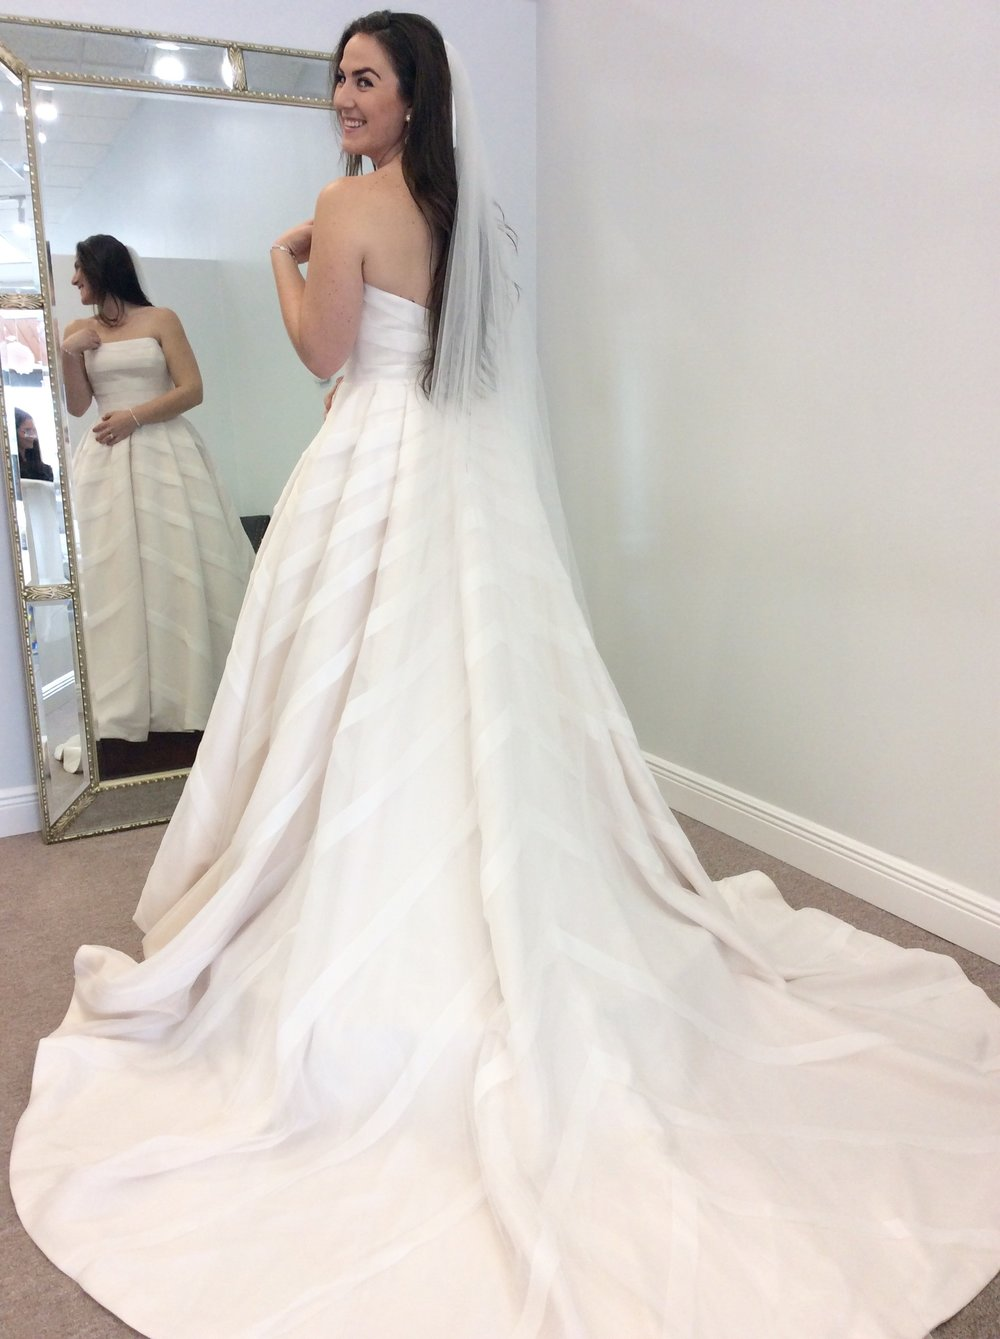 8c72c5654c41 Many times a bride is afraid of the veil blocking the view of the dress  going down the aisle. A plain tulle veil will not obstruct the view and most  ...